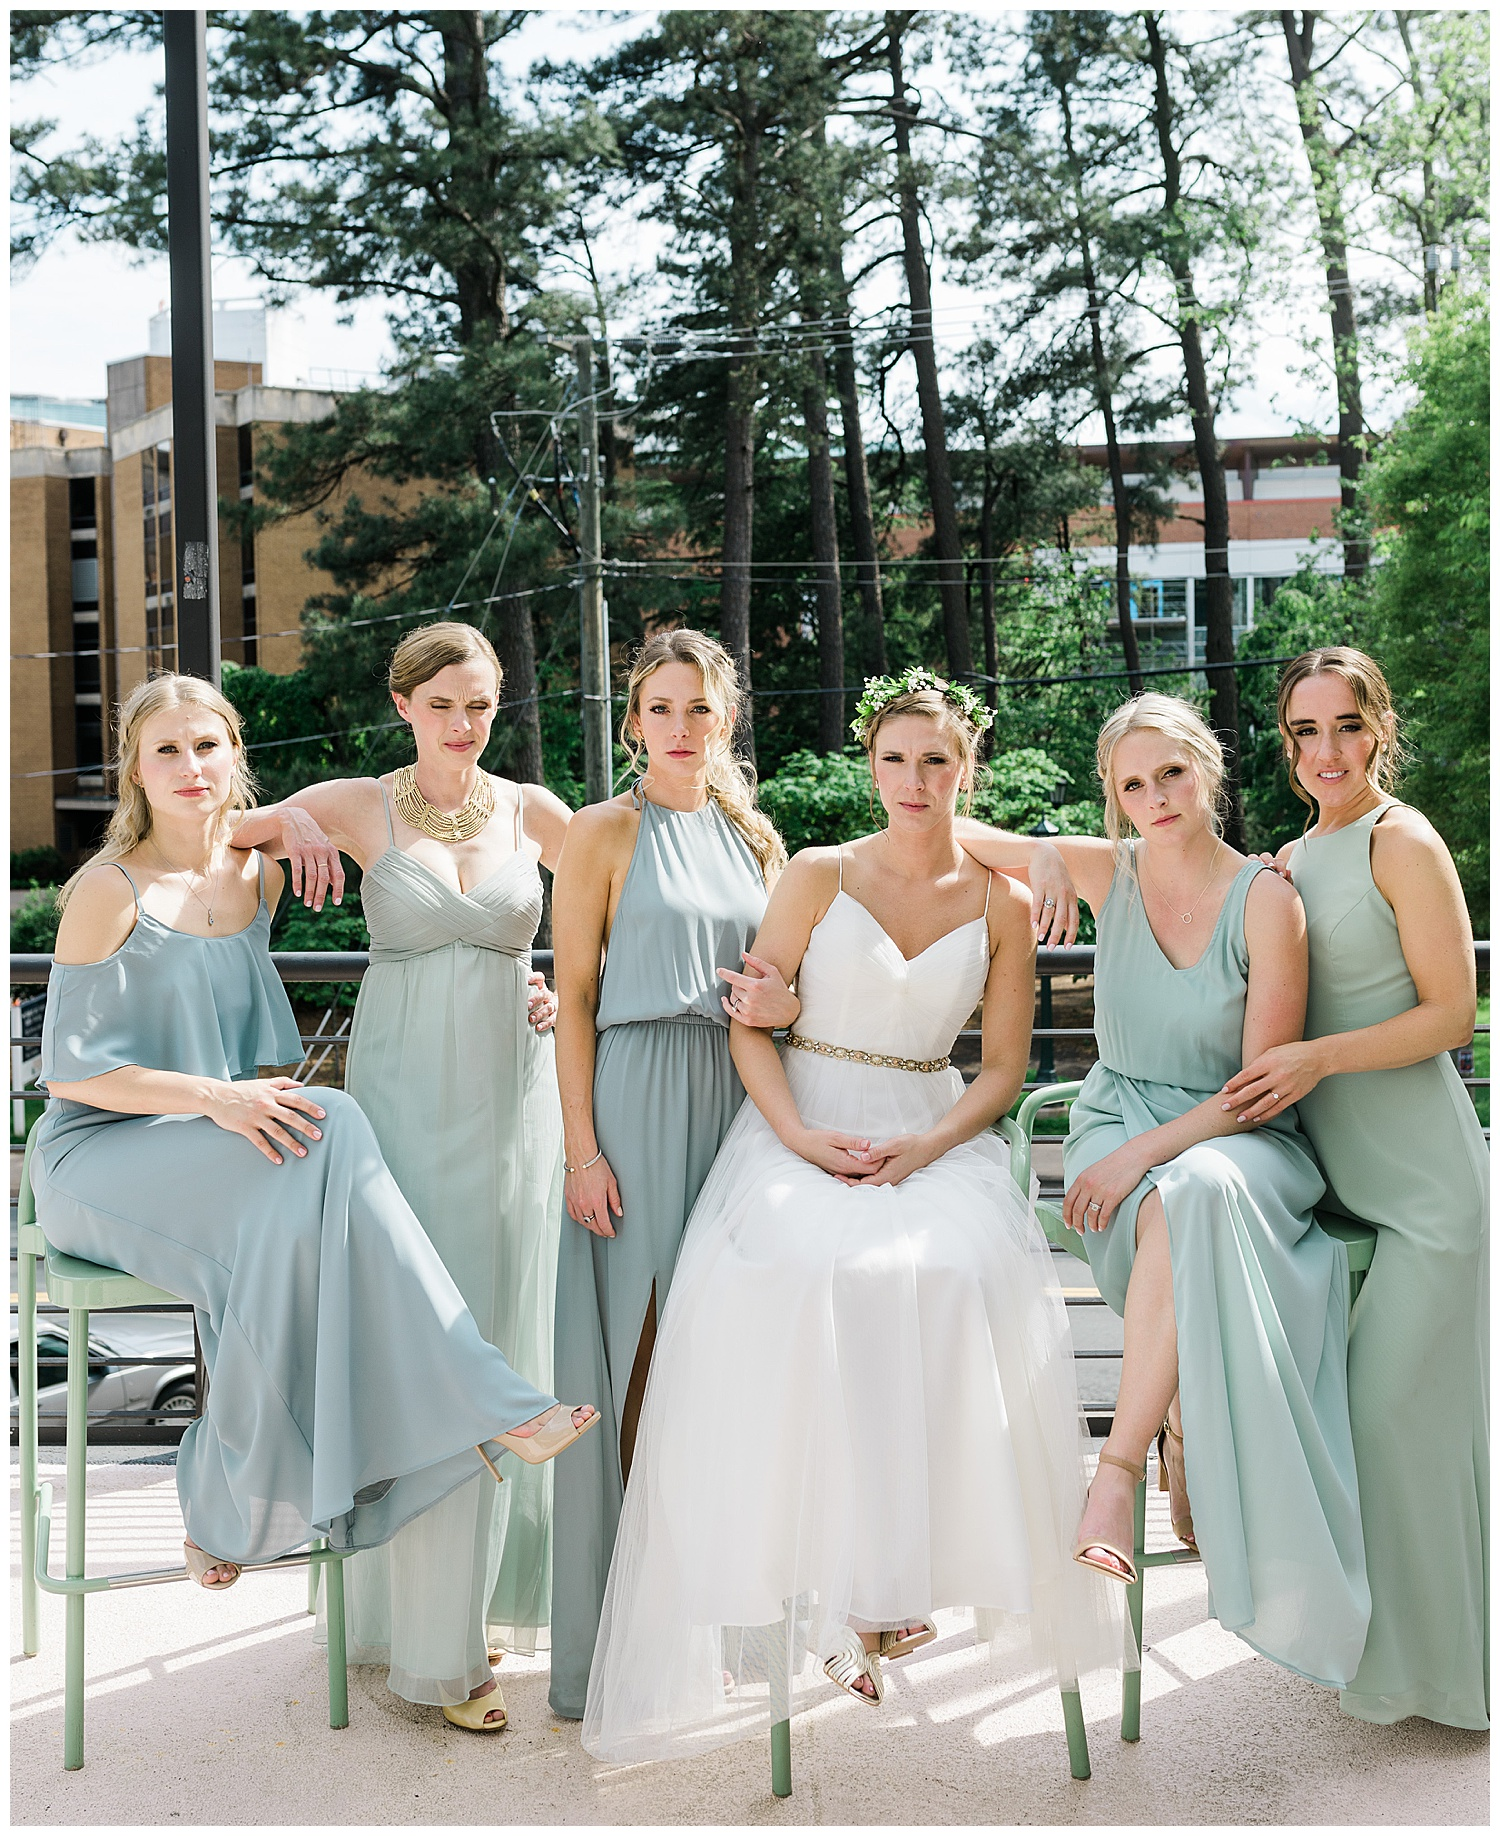 Bridal party at The Graduate Hotel Charlottesville